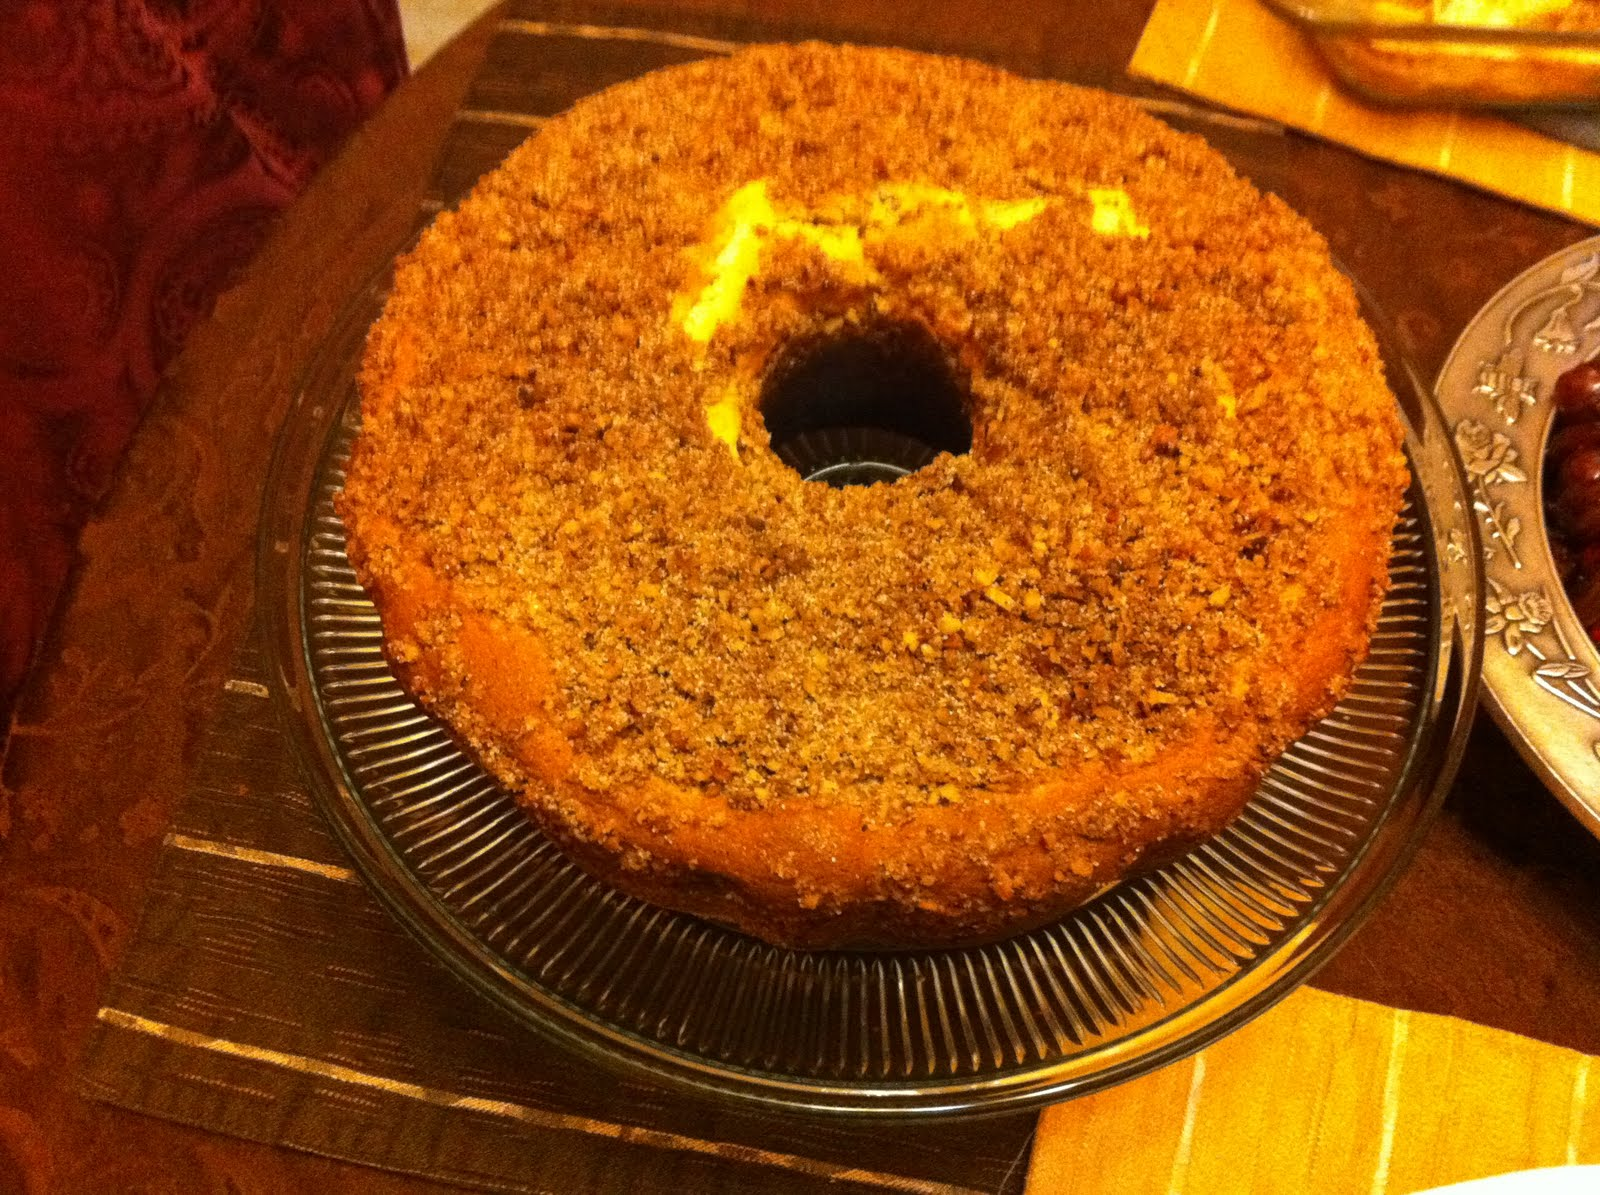 Americas Test Kitchens Sour Cream Coffee Cake with Brown Sugar